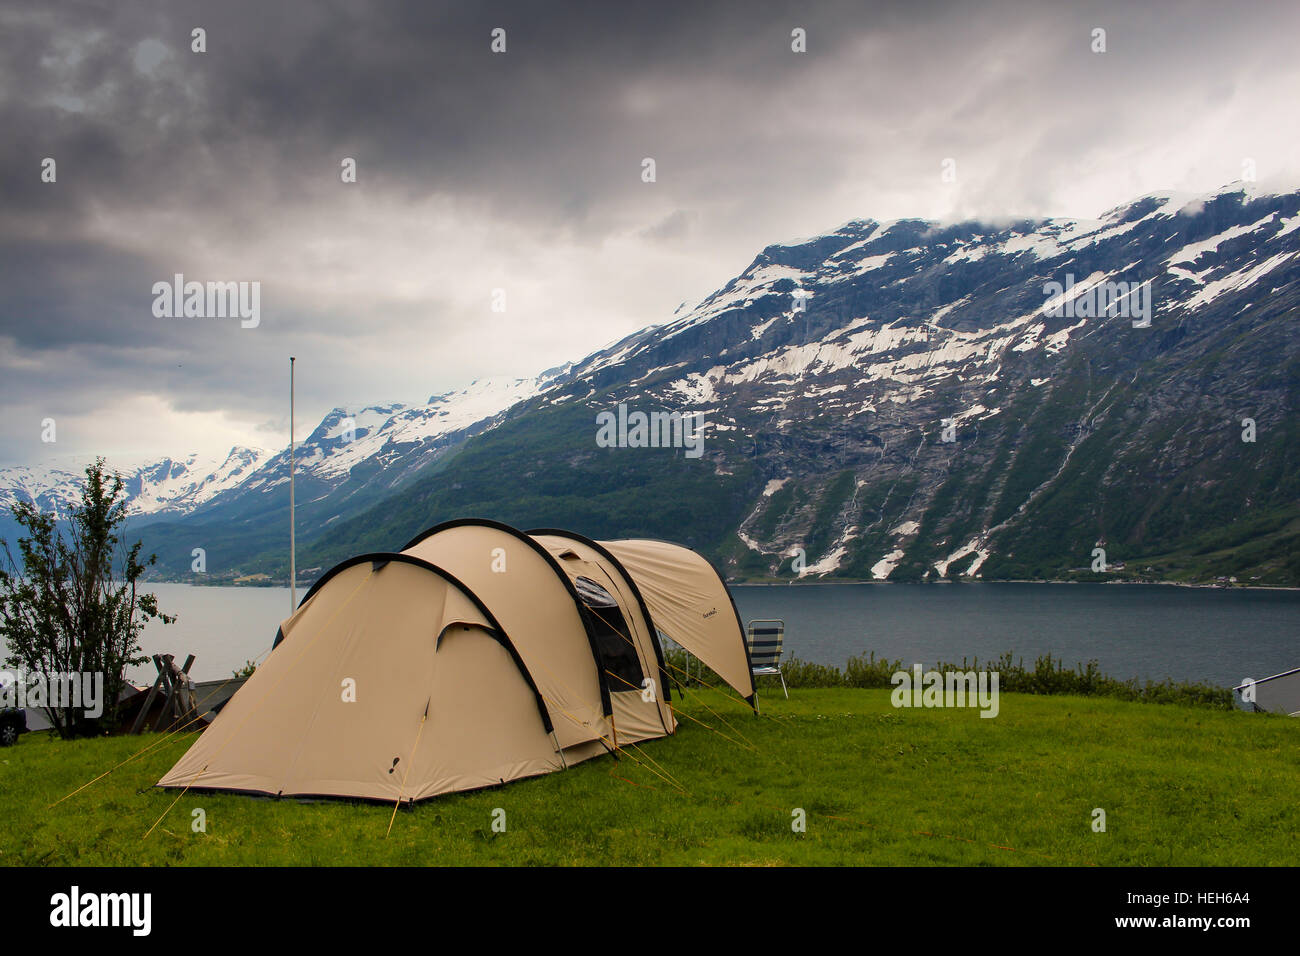 Tent camping on a Norwegian fjord with dark clouds and snow-covered mountains in the background - Stock Image